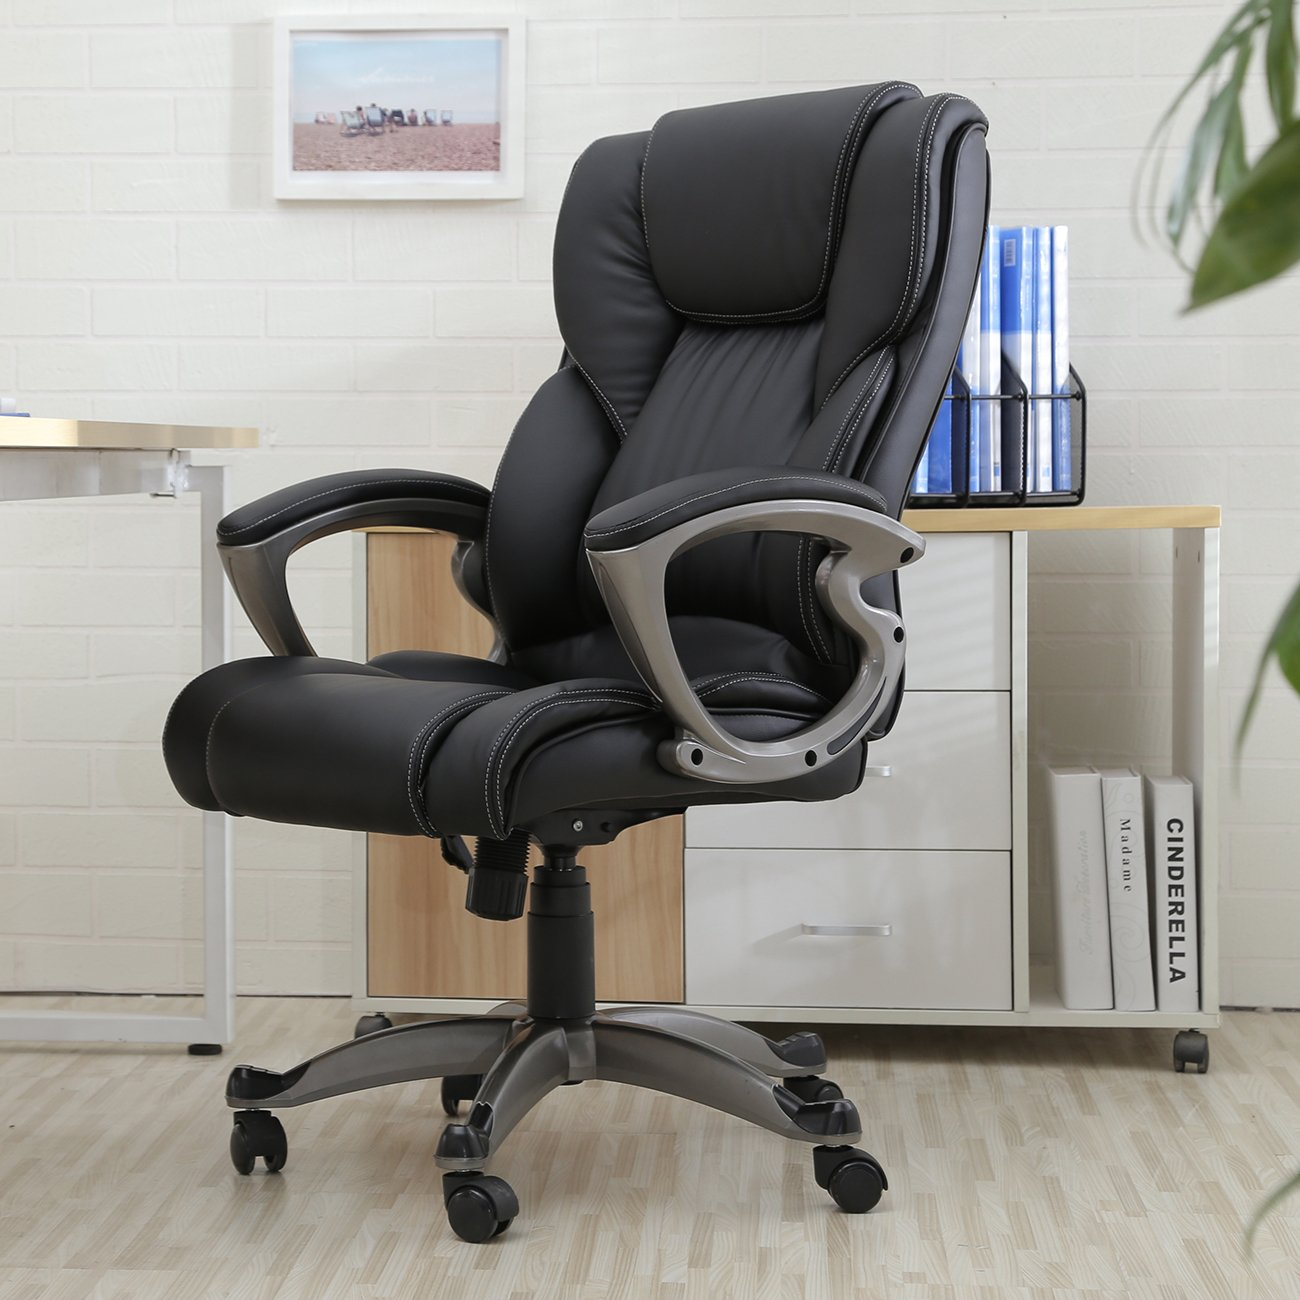 leather desk chairs. Amazon.com: Belleze High Back Executive PU Leather Office Chair, Black: Home \u0026 Kitchen Desk Chairs